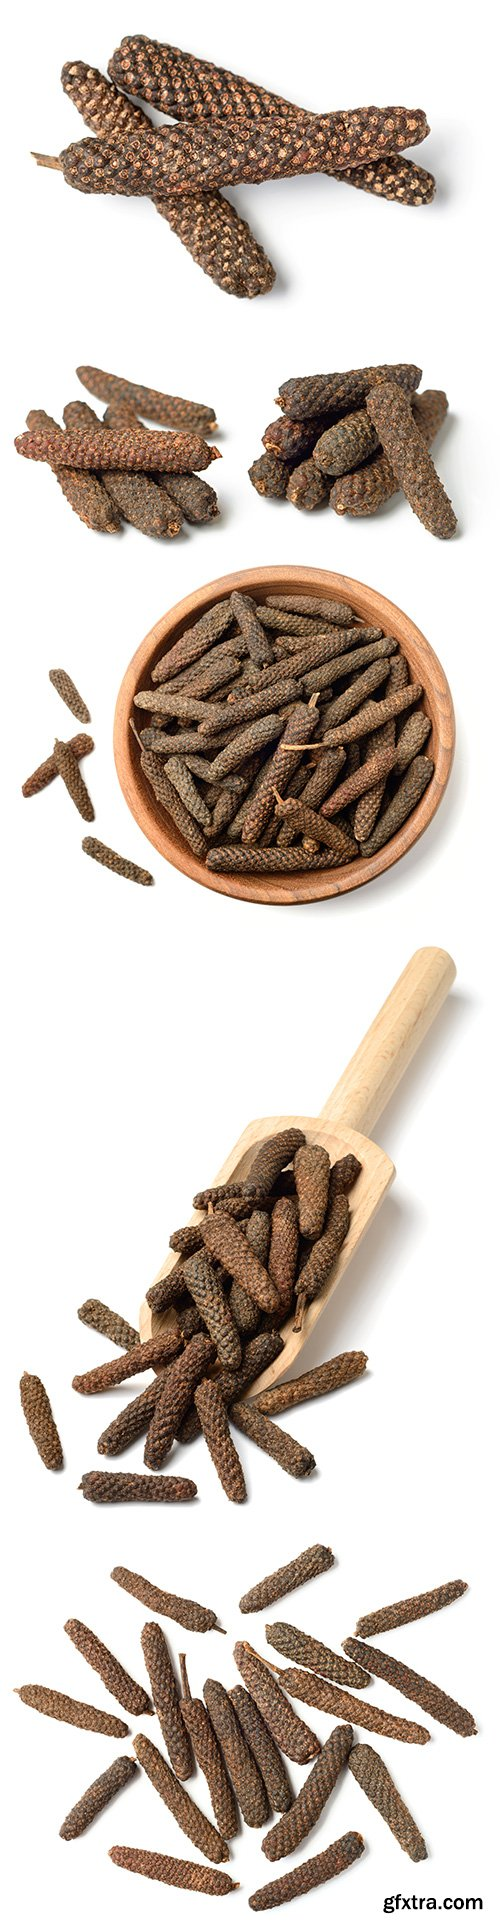 Dried Long Pepper Isolated - 6xJPGs